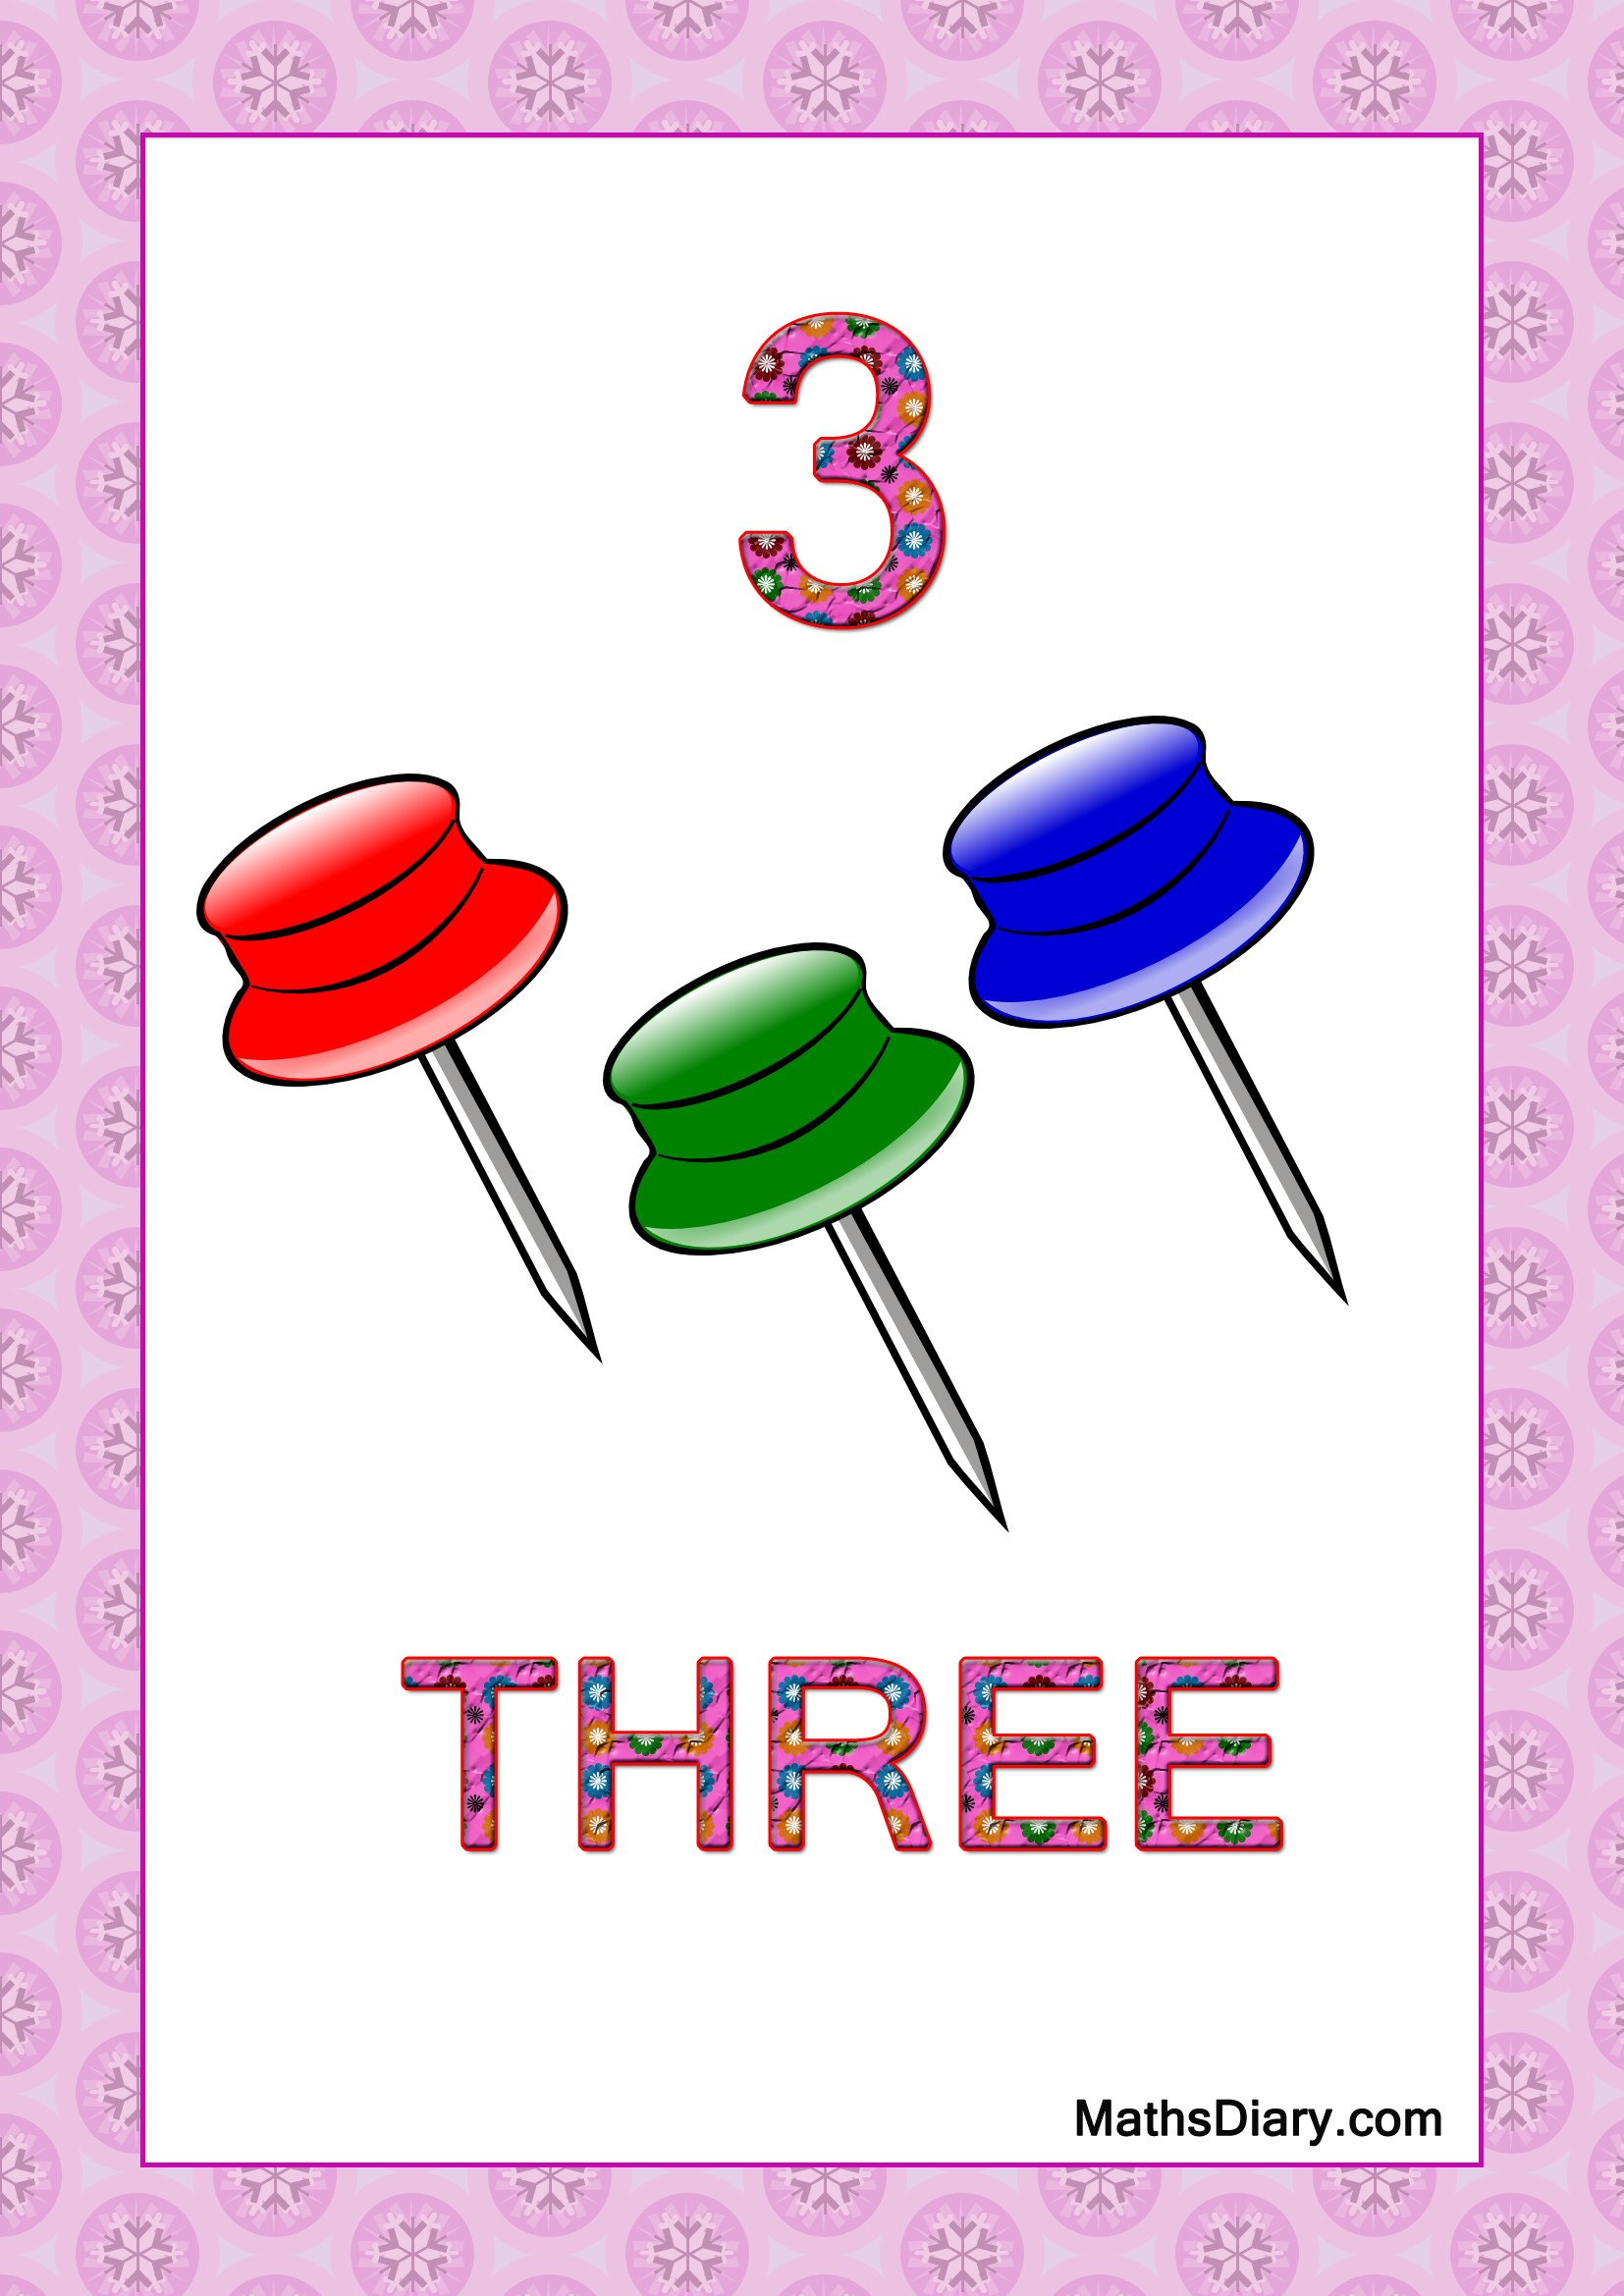 Learning Counting And Recognition Of Number 3 Level 2